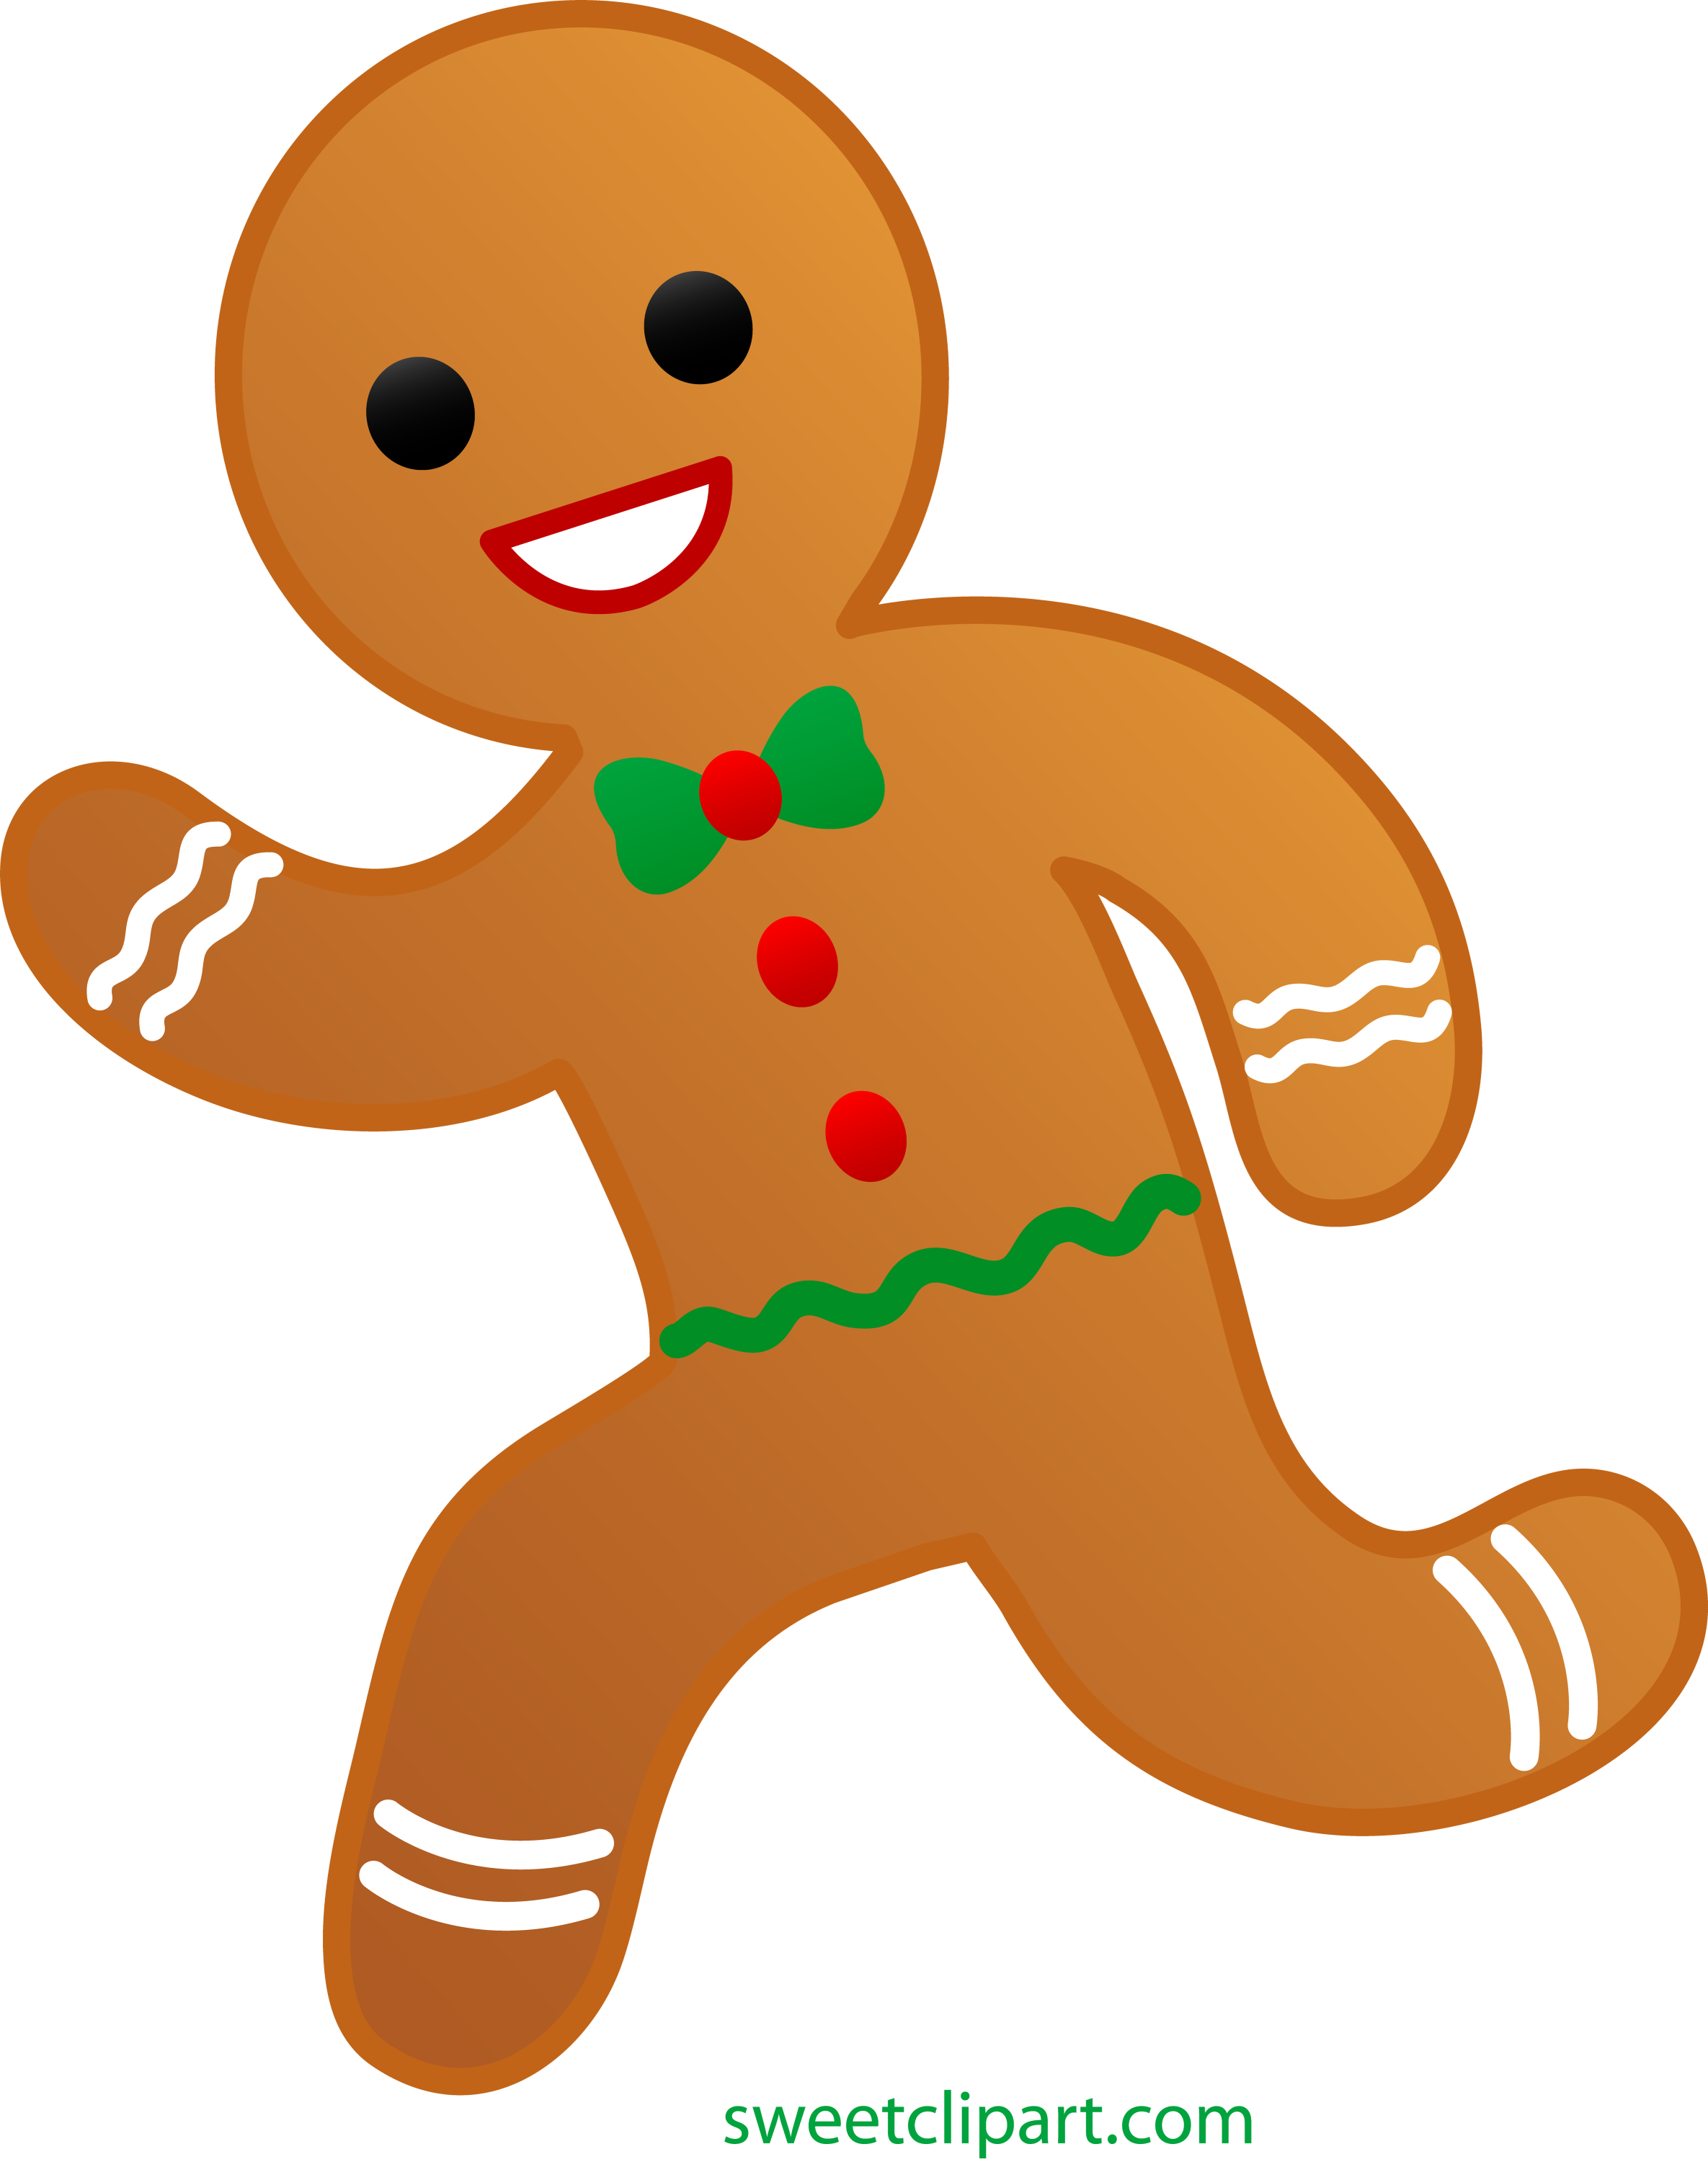 gingerbread man running away free clip art rh sweetclipart com free clipart gingerbread girl free christmas clipart gingerbread man